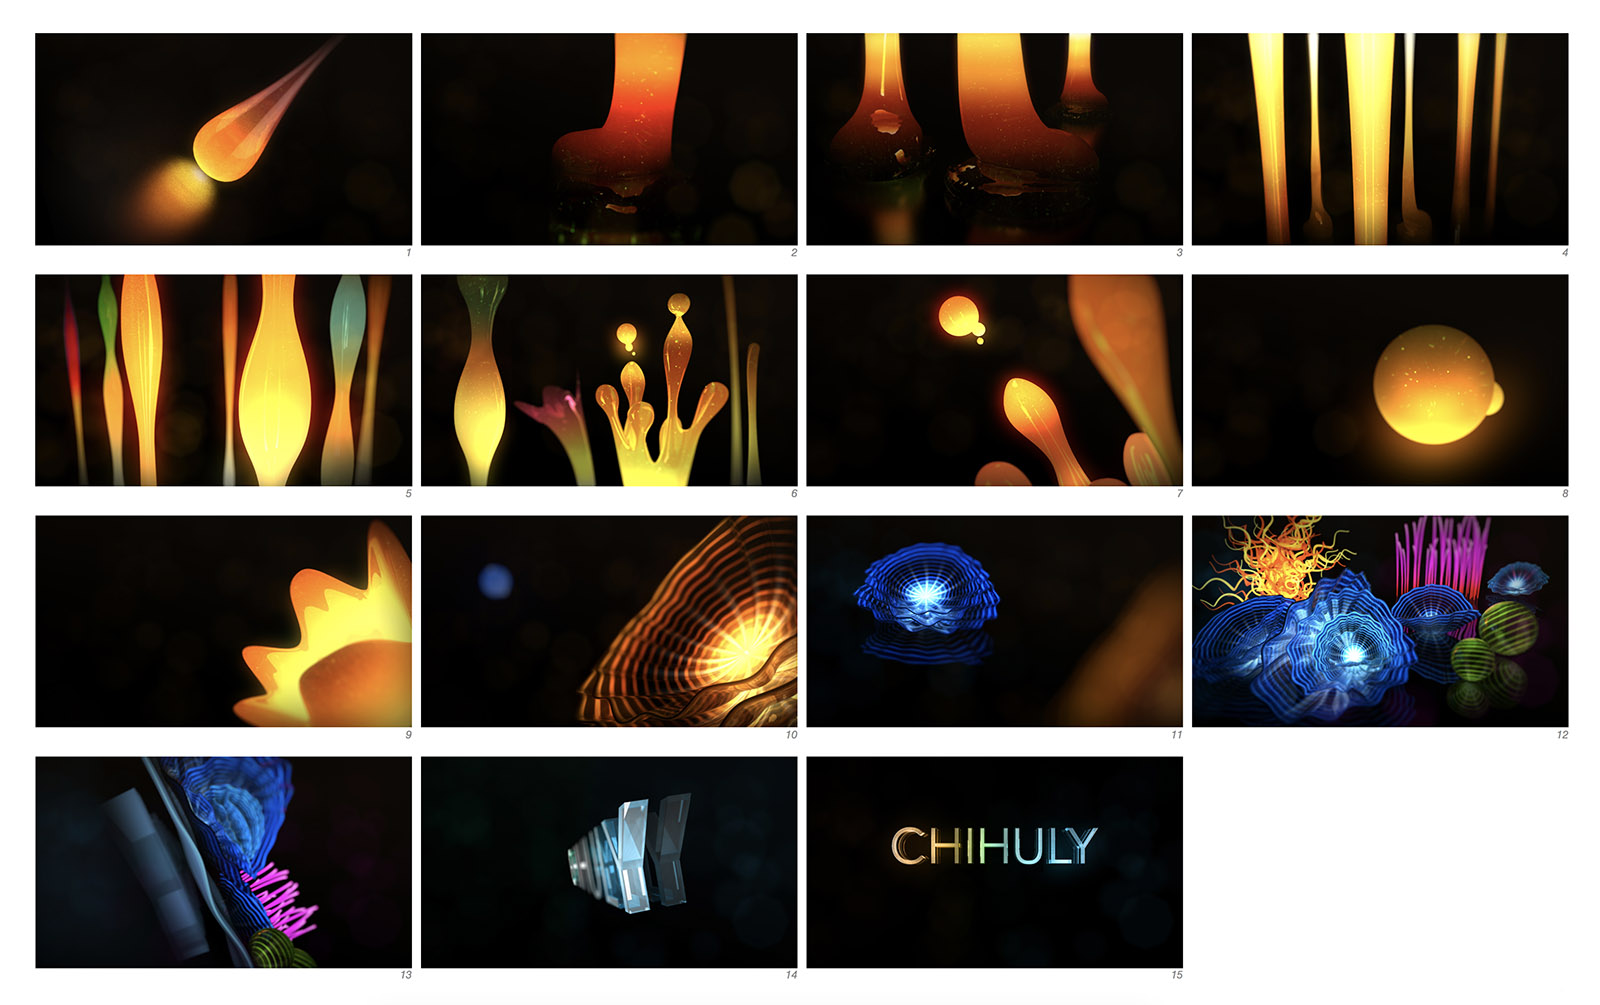 Chihuly style frames